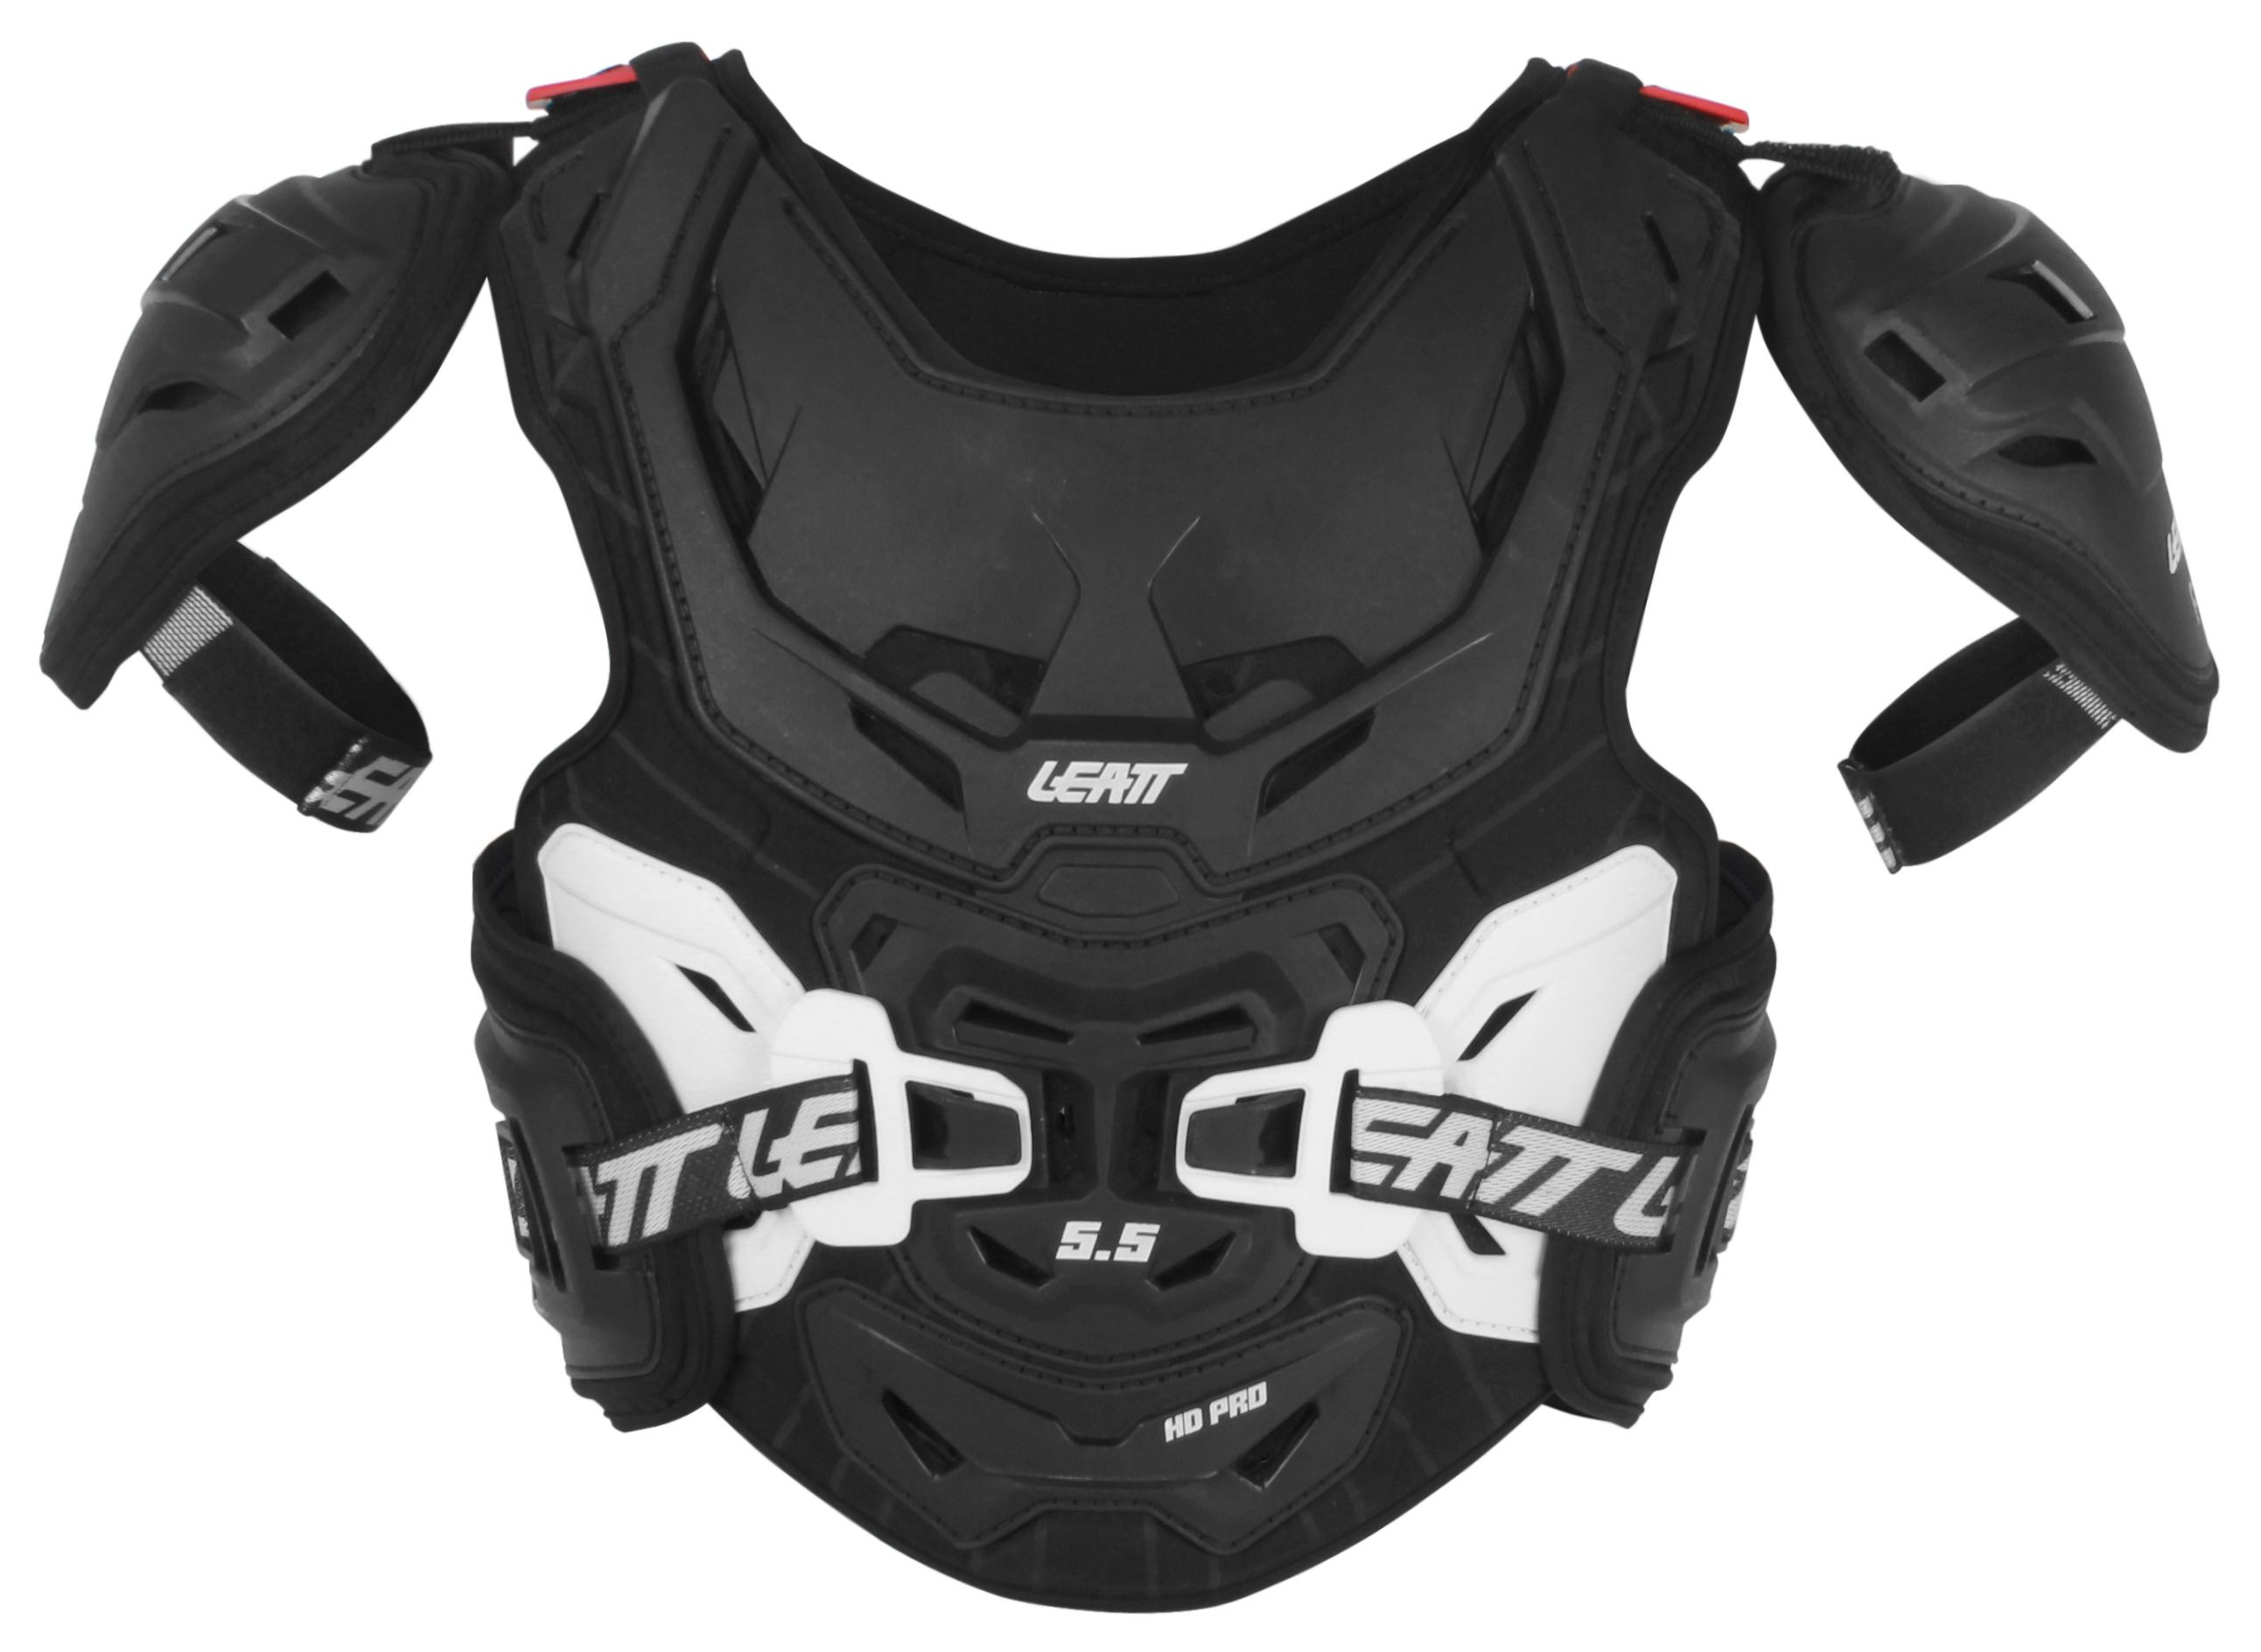 leatt 2015 youth 4 5 chest protector cycle gear. Black Bedroom Furniture Sets. Home Design Ideas